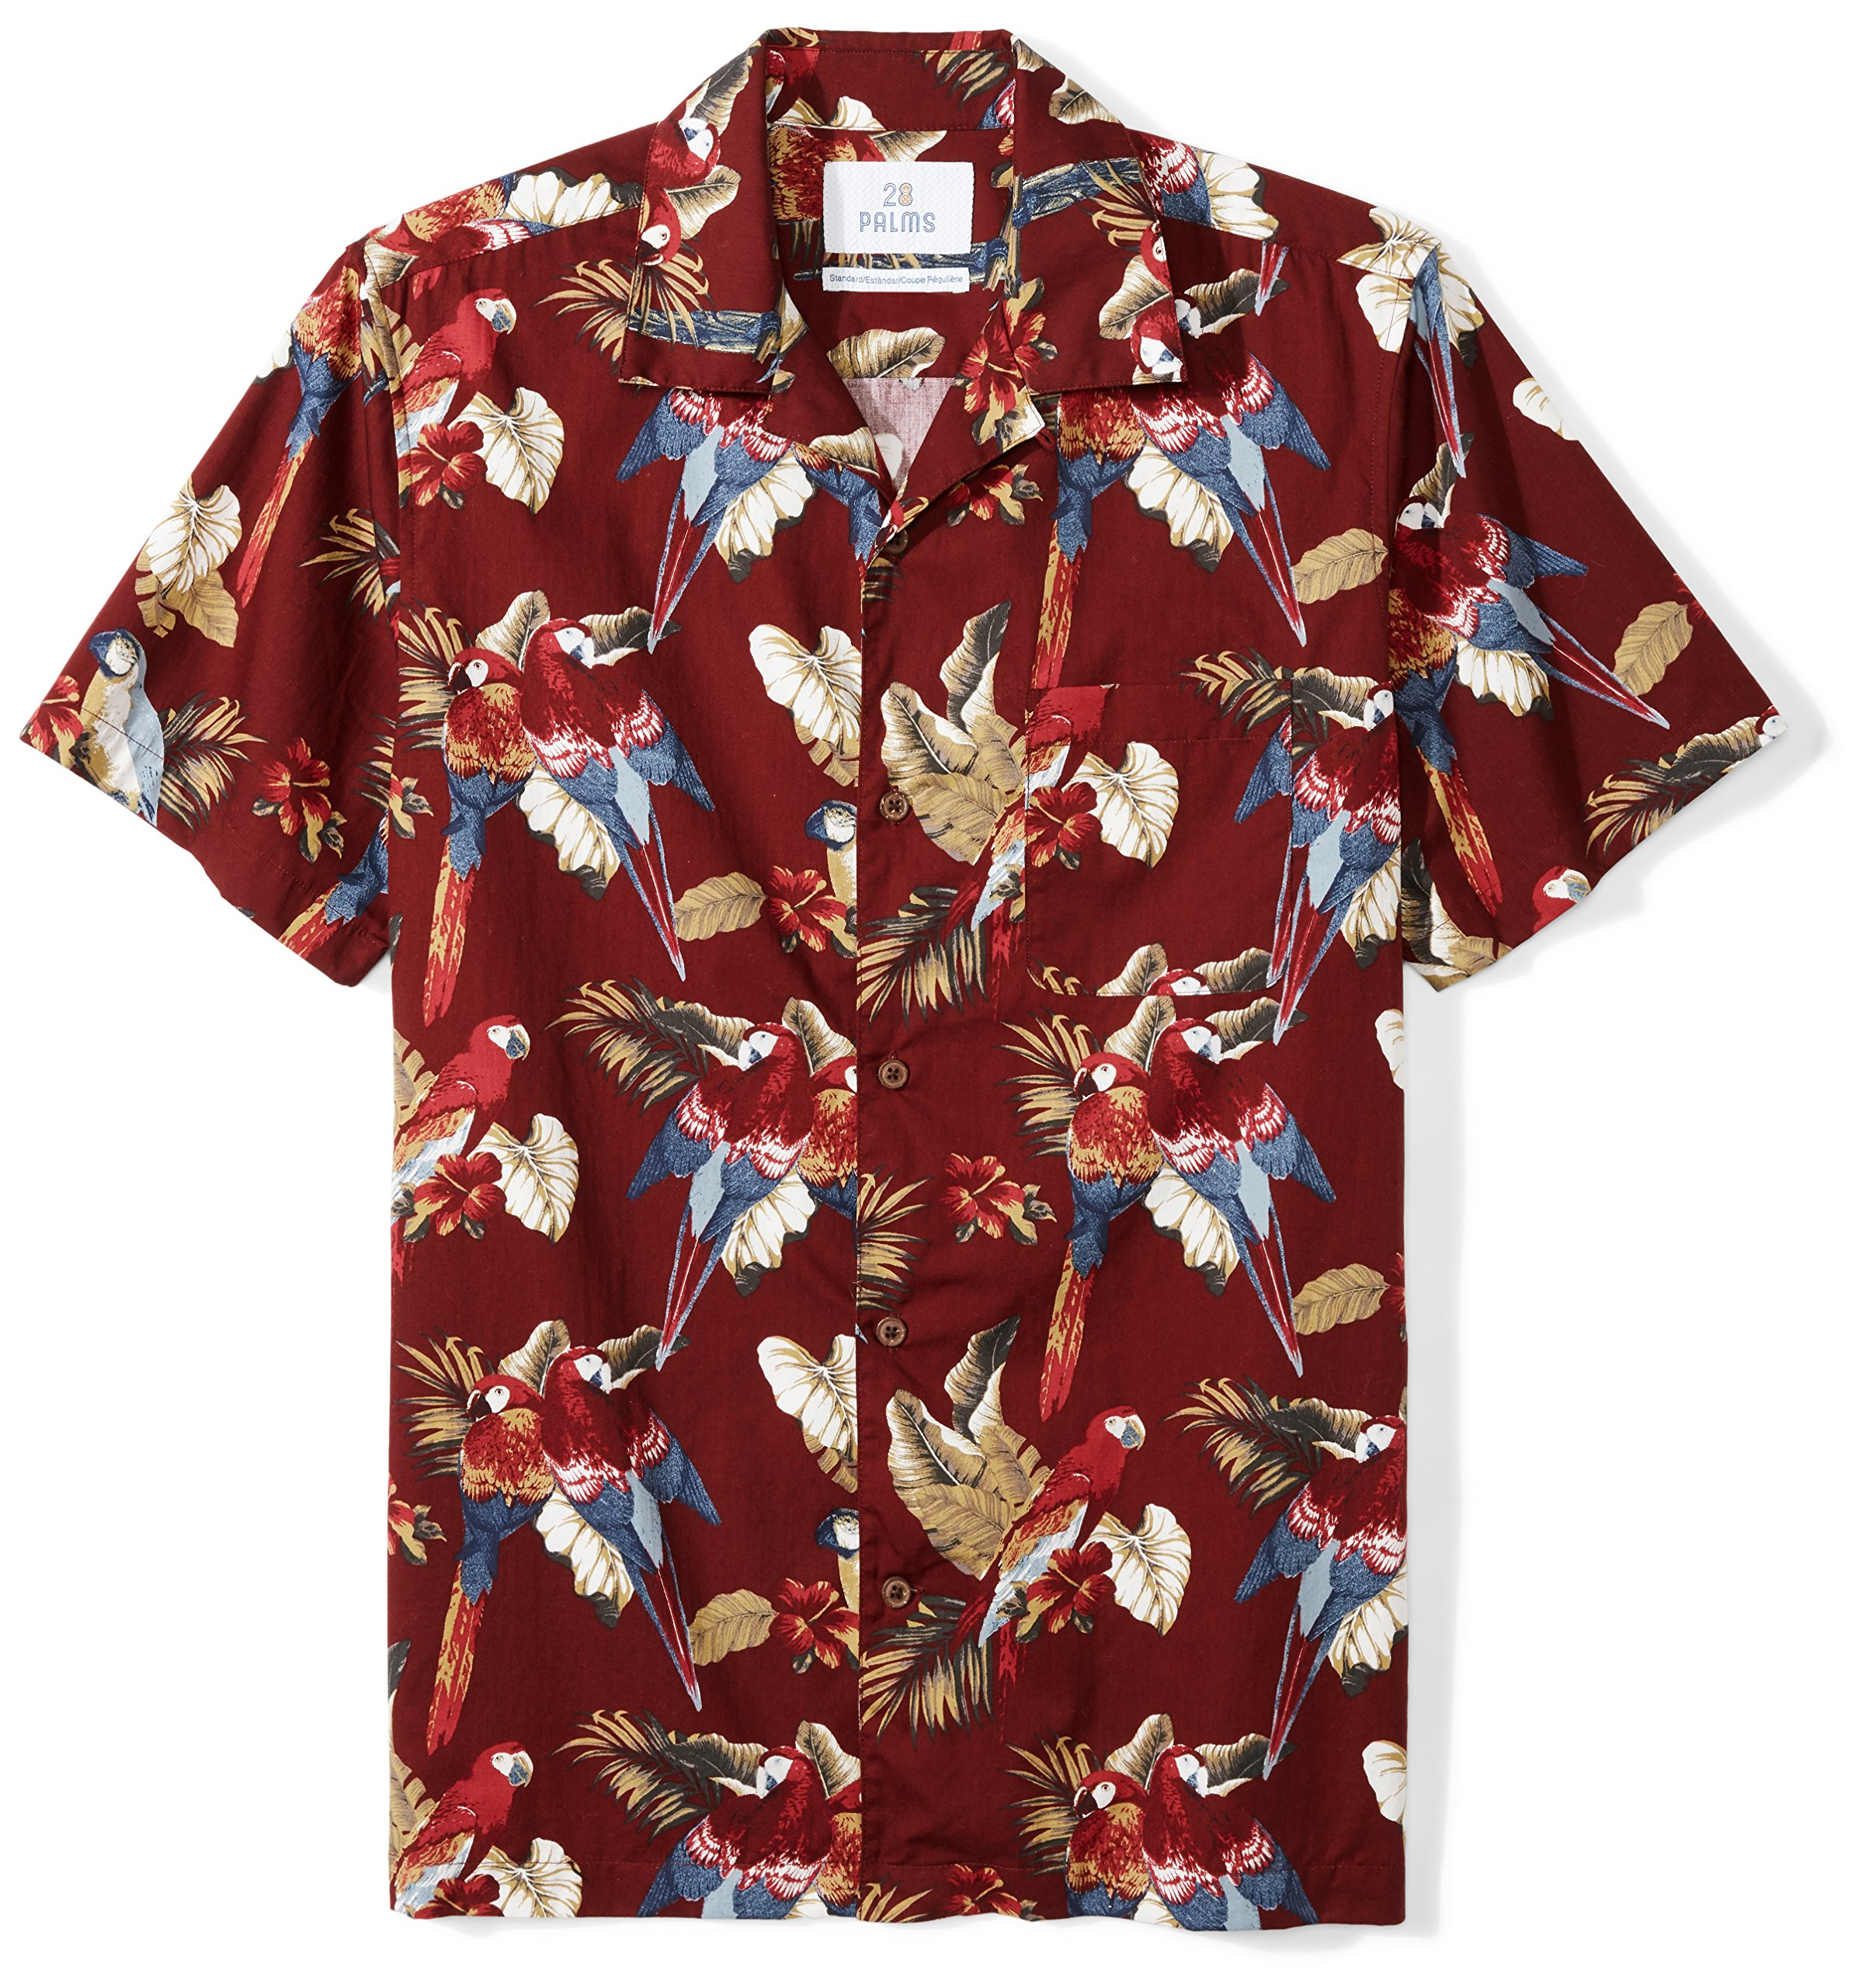 28 Palms Men's Standard-Fit 100% Cotton Tropical Hawaiian Shirt, Red Parrot, X-Large by 28 Palms